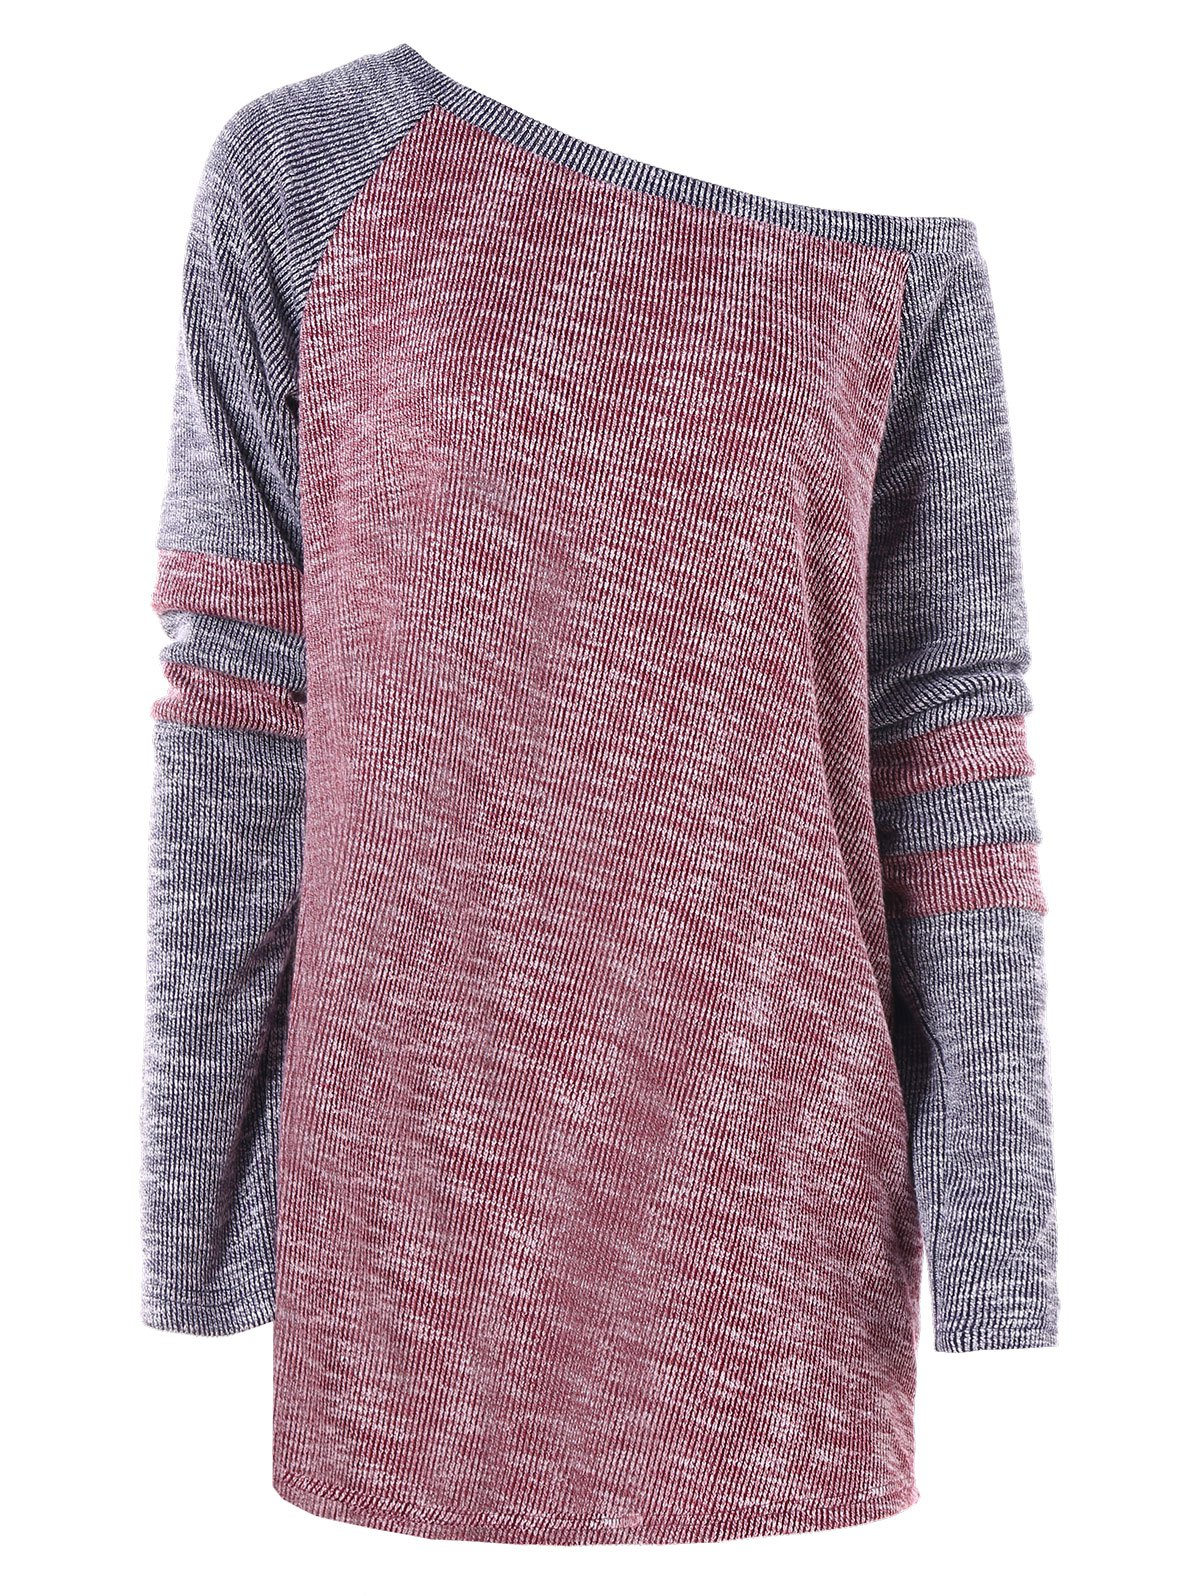 Unique Color Block Tunic Knitwear